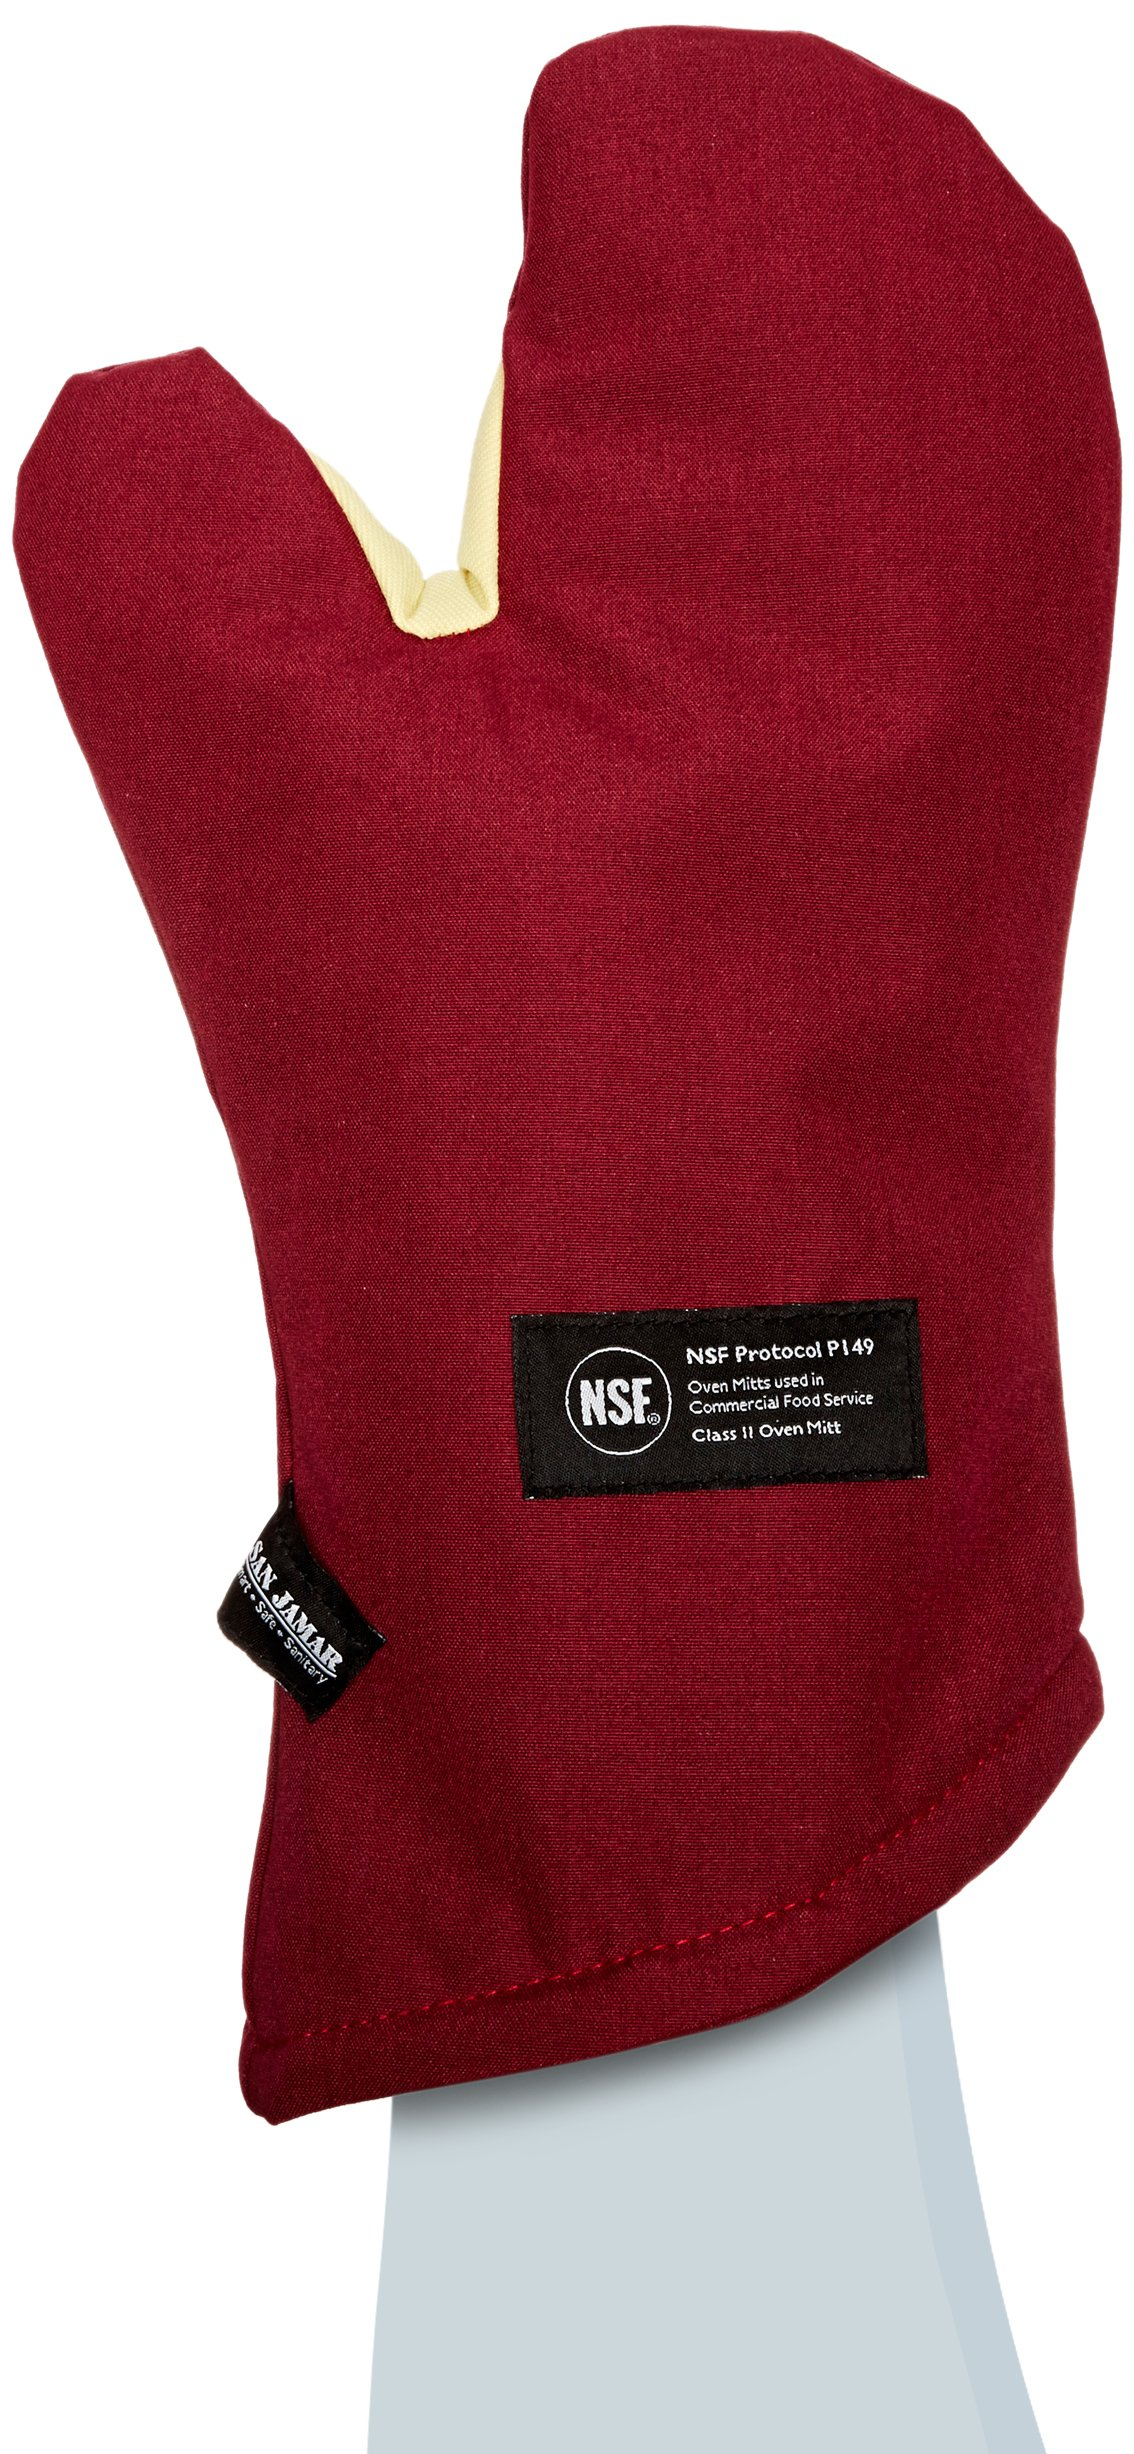 San Jamar KT0215 Cool Touch Flame Conventional High Heat Intermittent Flame Protection up to 900°F Oven Mitt, 15'' Length, Red by San Jamar